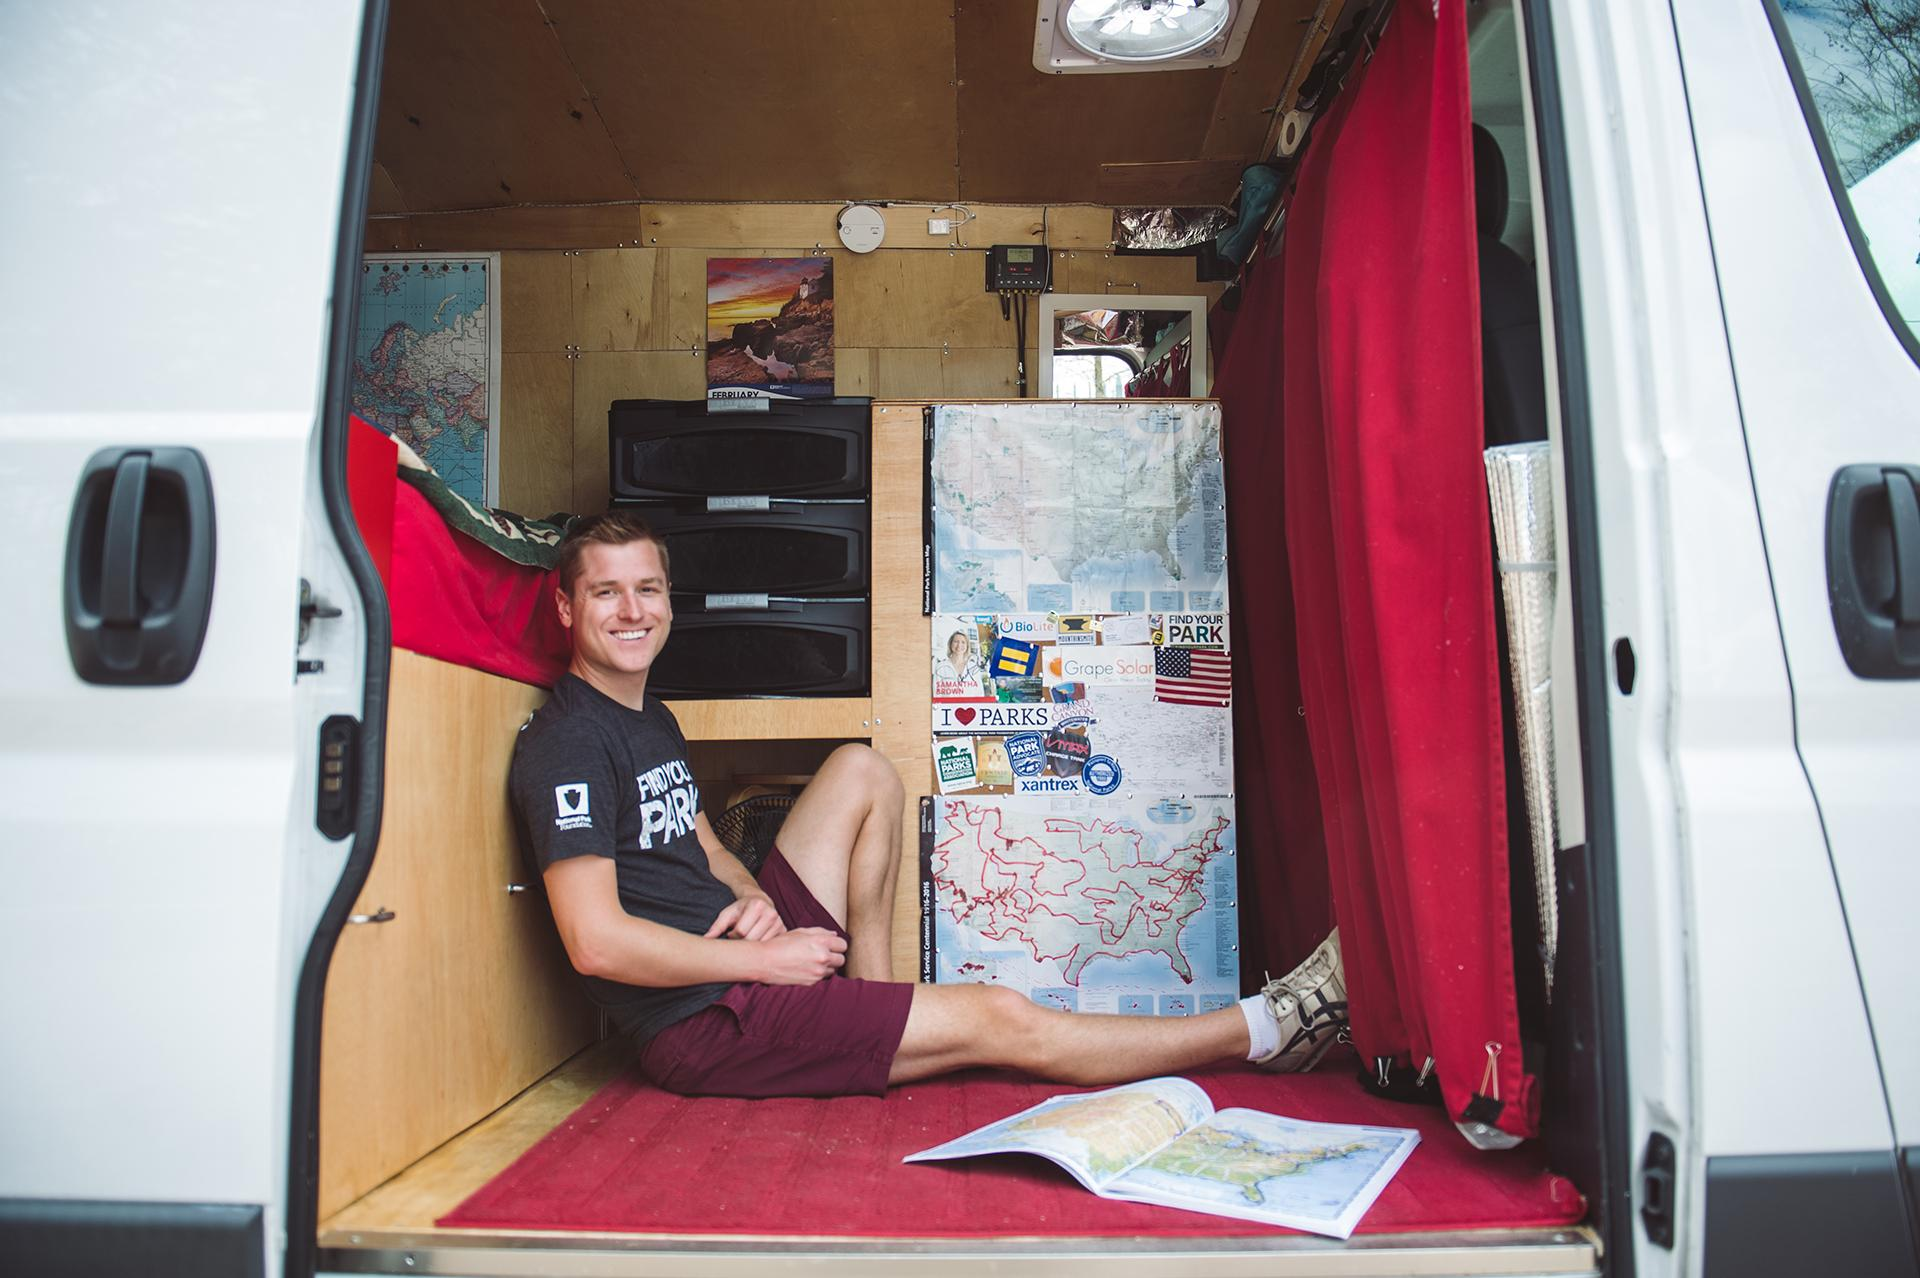 For the past three years, Mikah Meyer lived out of a van as he drove across country visiting all 419 national park sites. (Courtesy of Mikah Meyer)